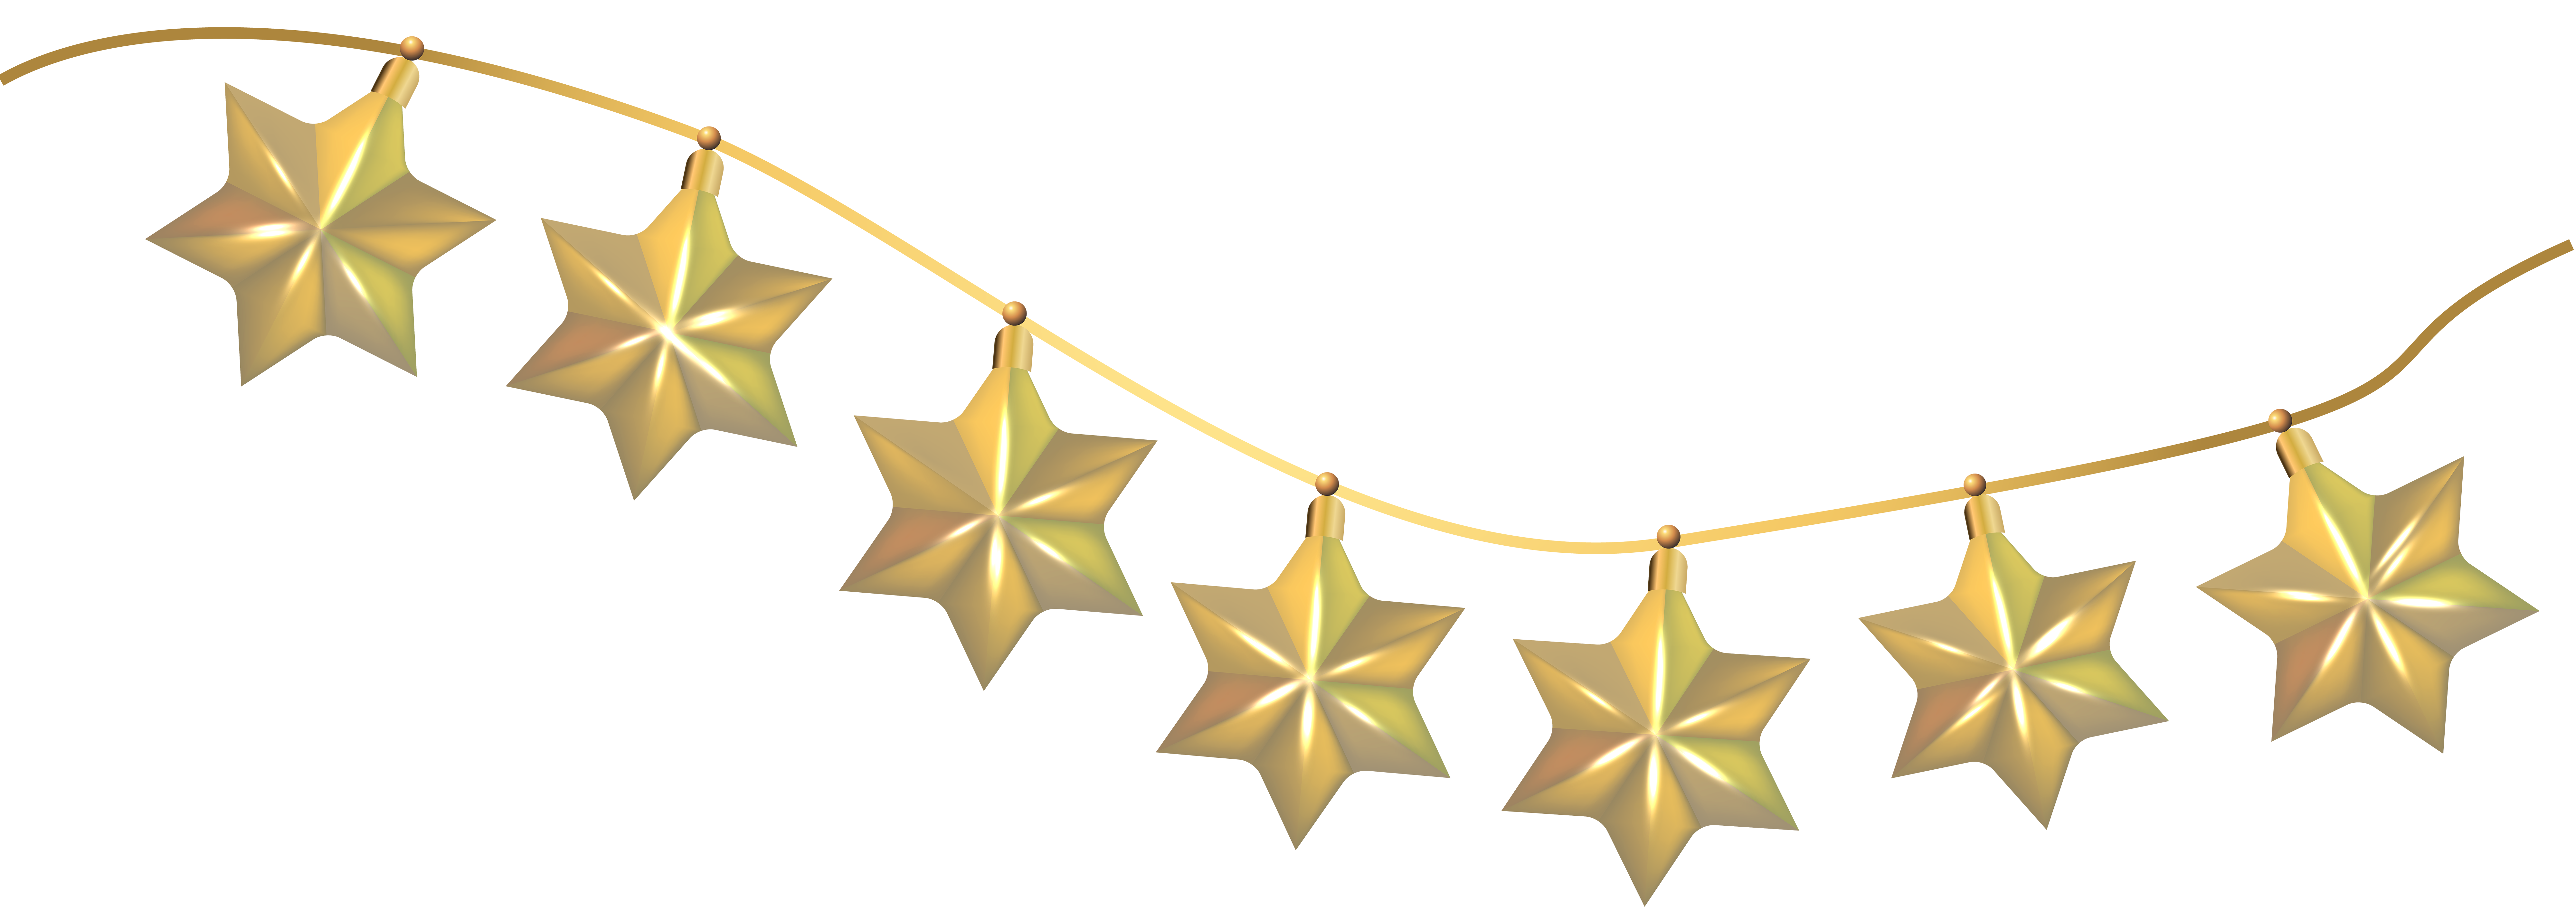 Hanging decoration png clip. Garland clipart stars